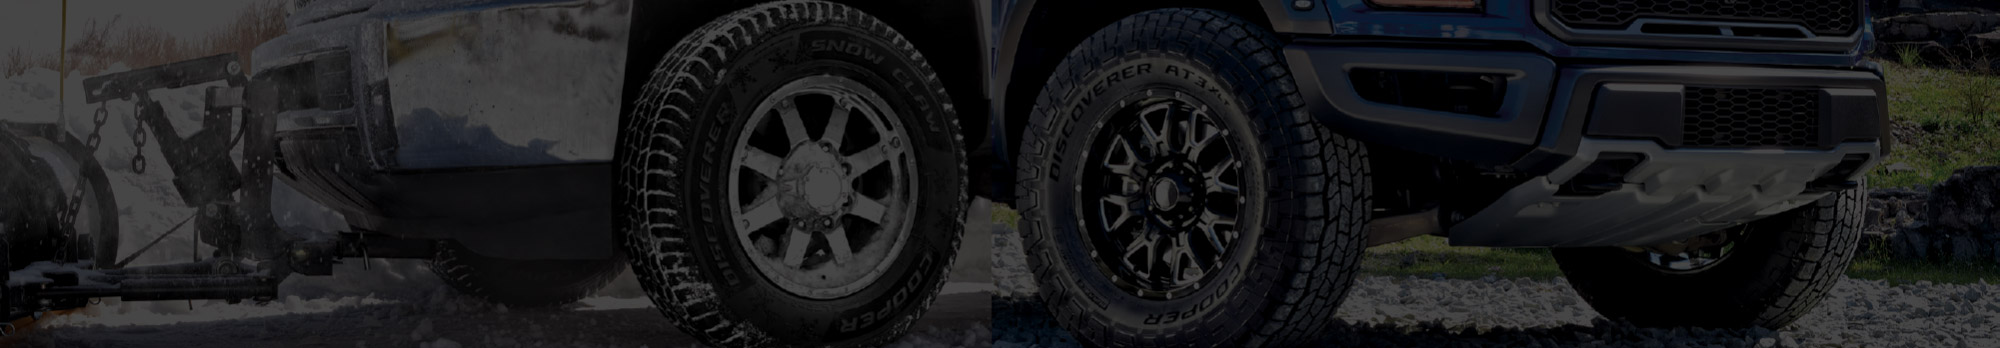 Cooper Tires banner background